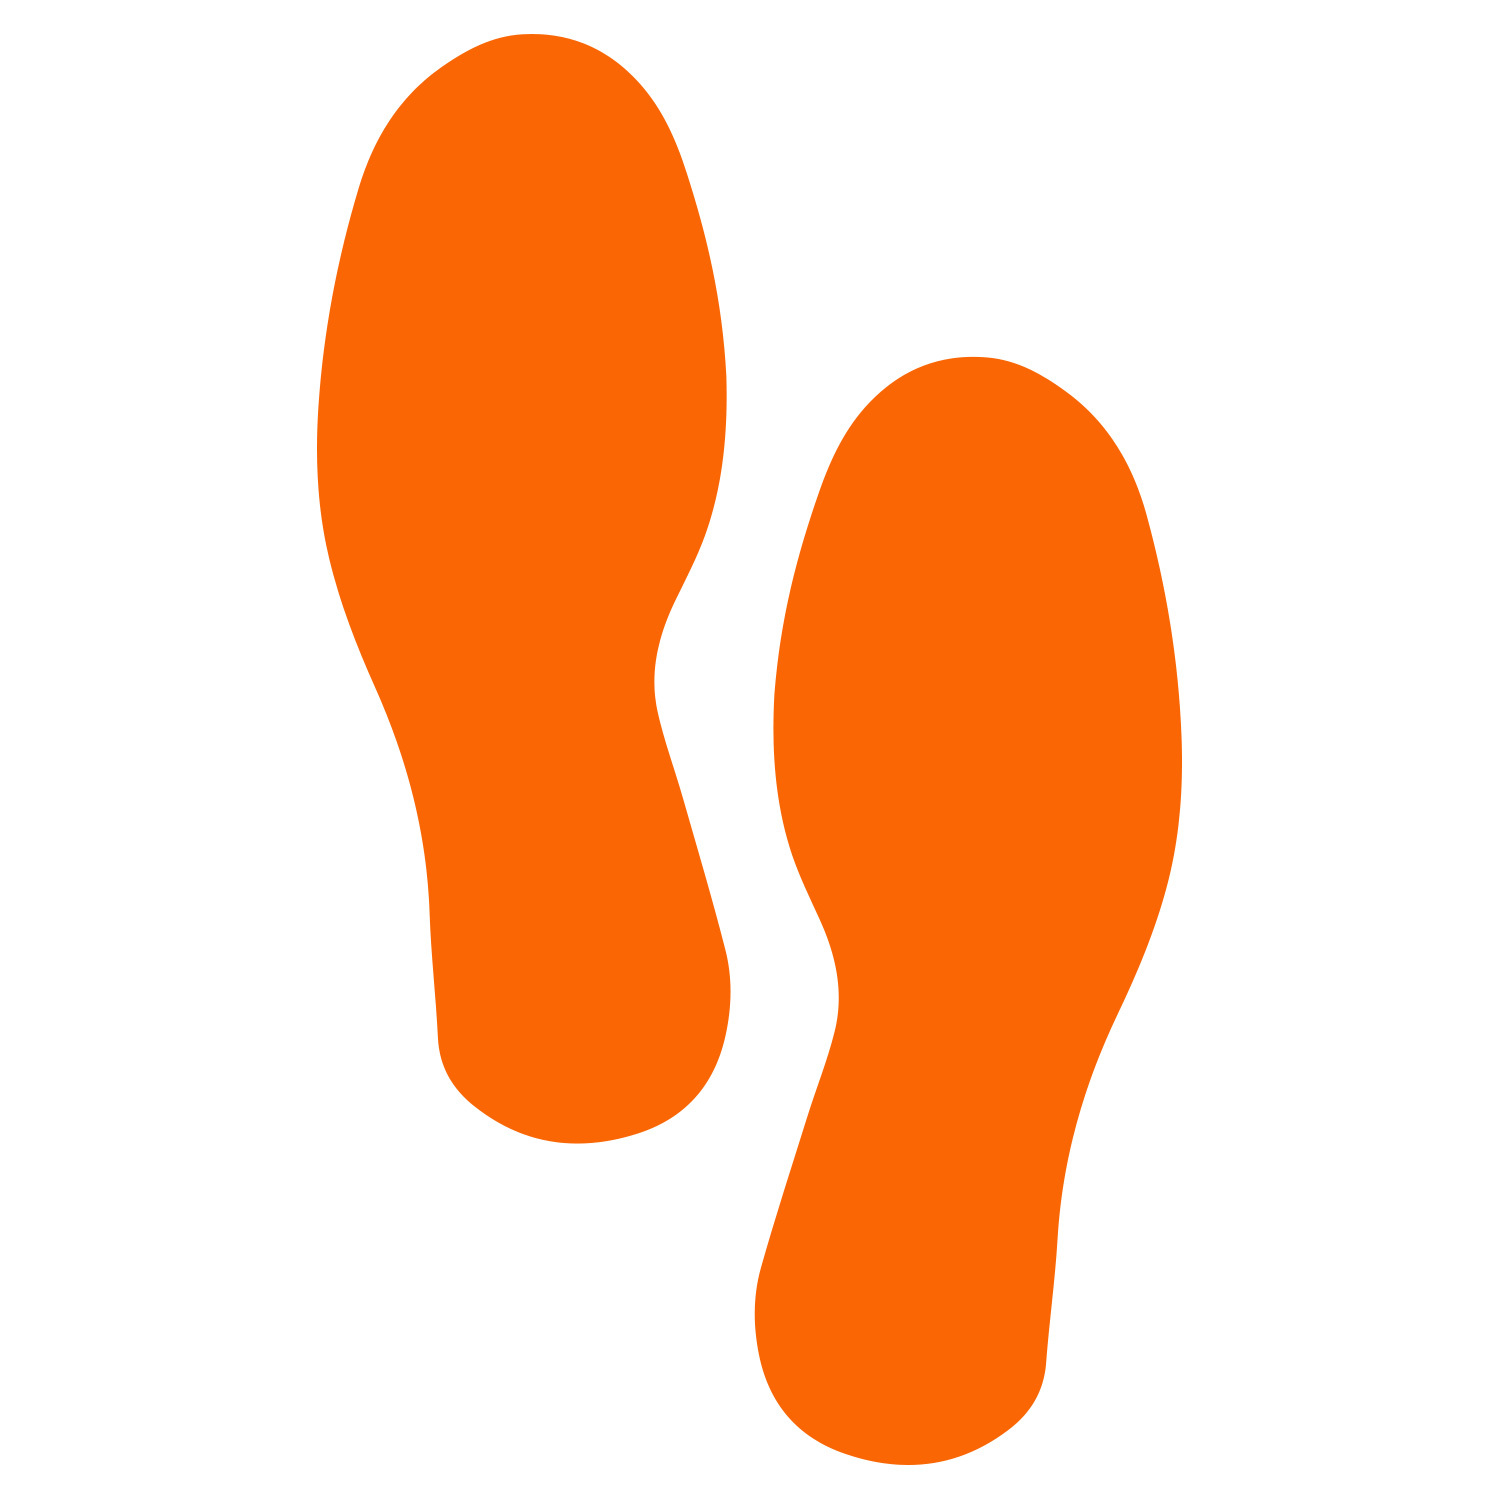 Primary image for LiteMark Medium Size Orange Removable Footprint Decals - Pack of 12 (6 Pairs)